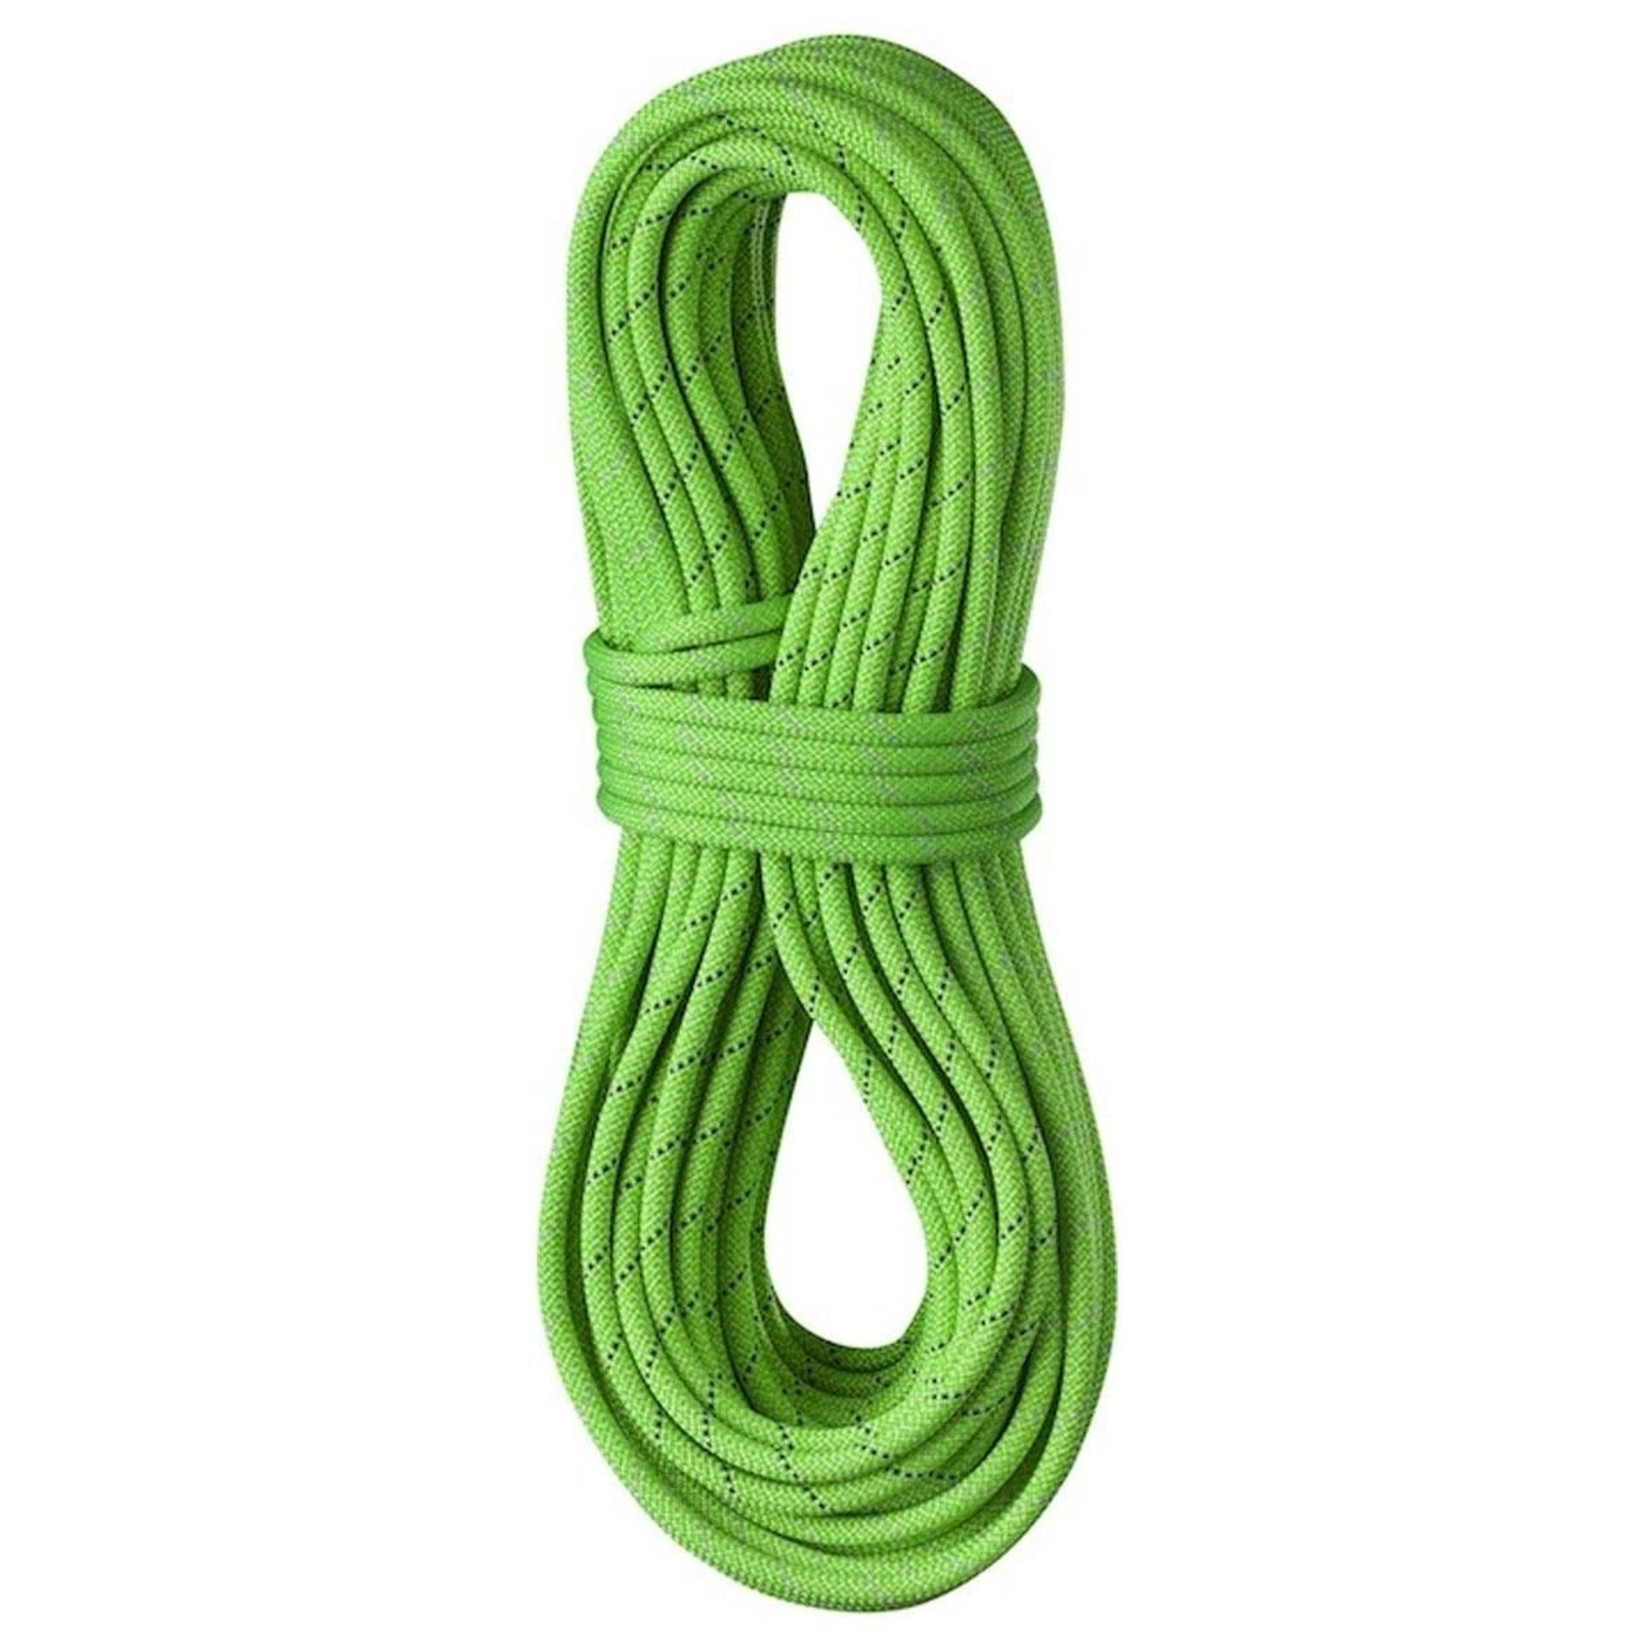 Edelrid Corde  Edelrid Tommy Caldwell Pro Dry DT - 9.6 mm